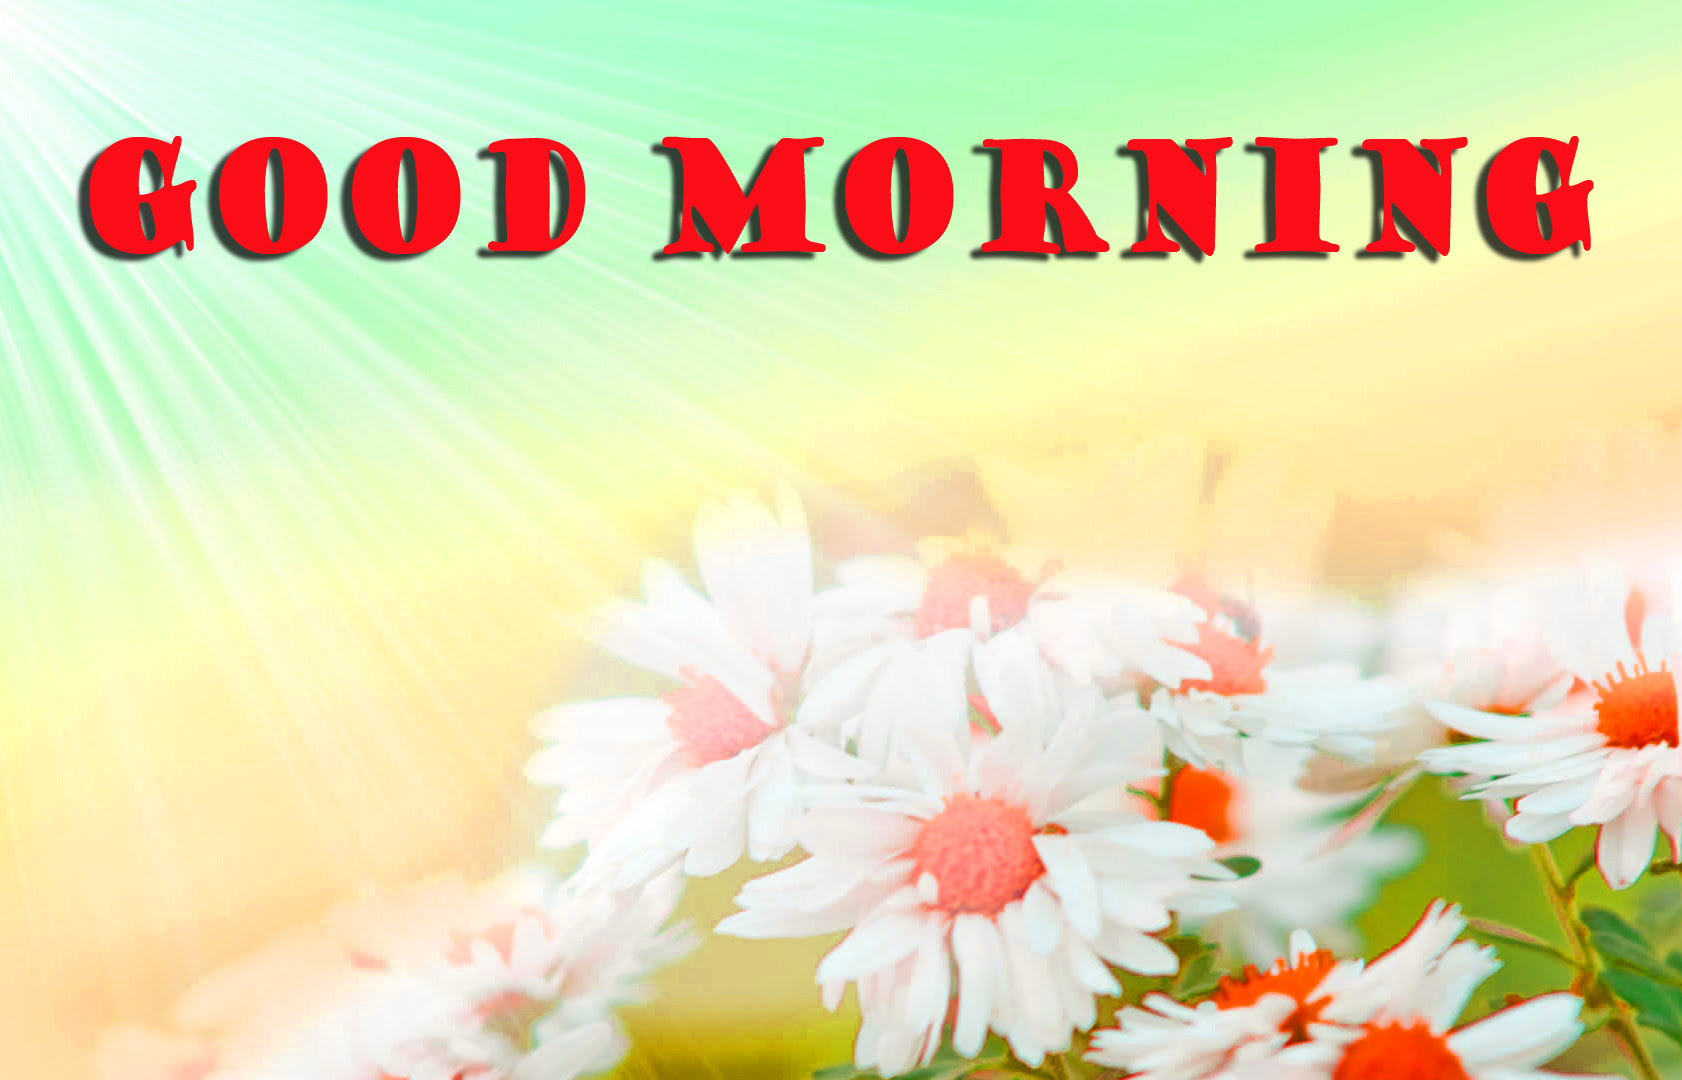 Good Morning Images With Quotes In Hindi With Flowers Archidev